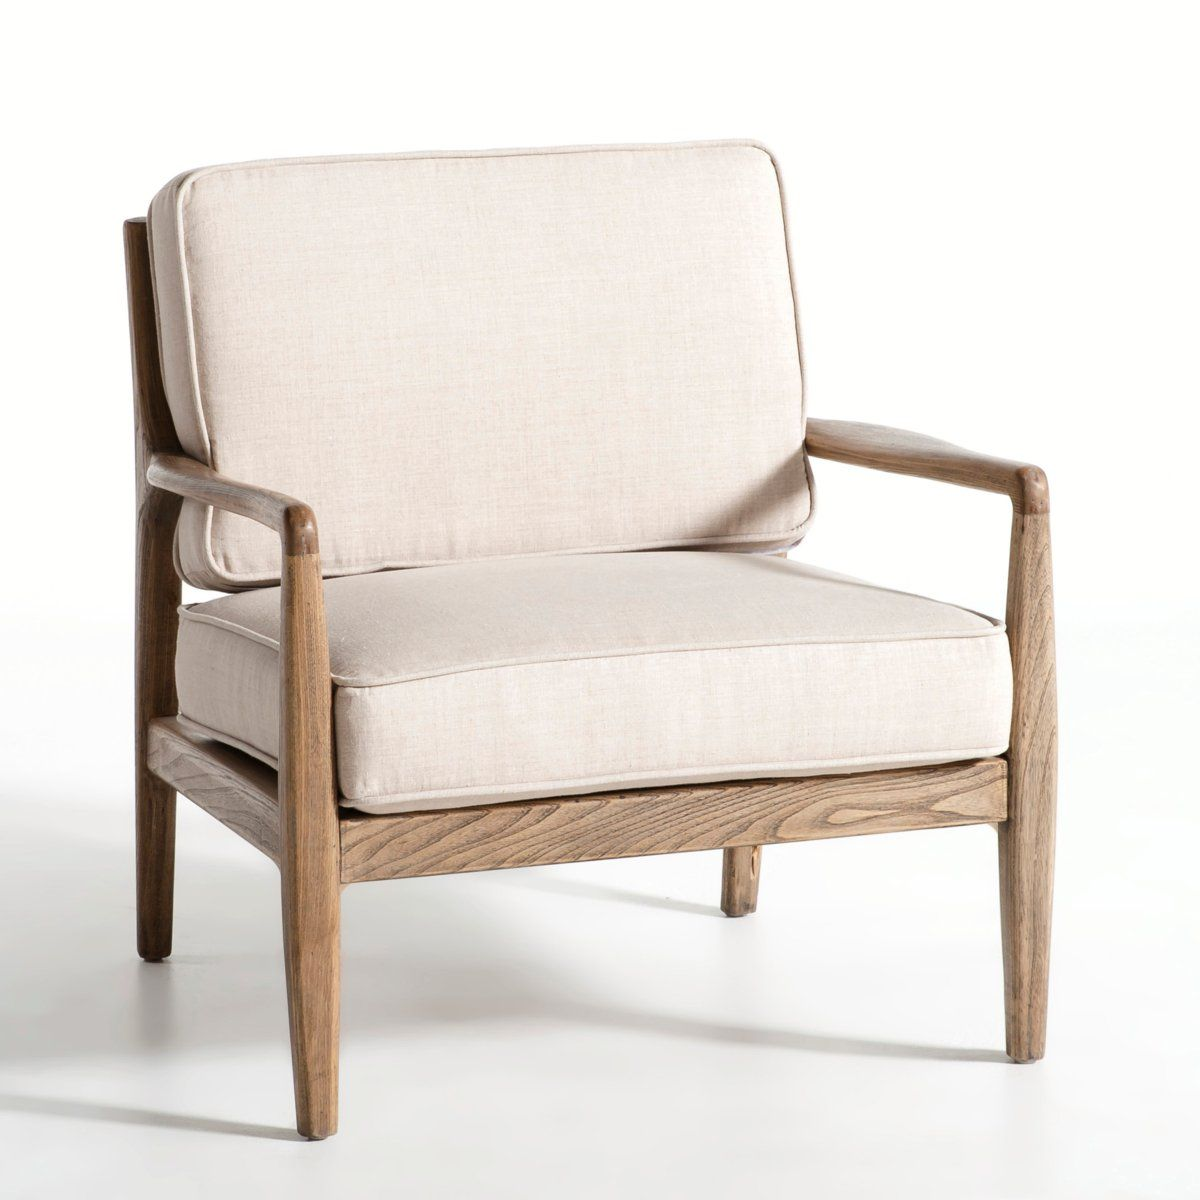 Fauteuil Dilma Am Pm La Redoute Furniture Chair Sofa